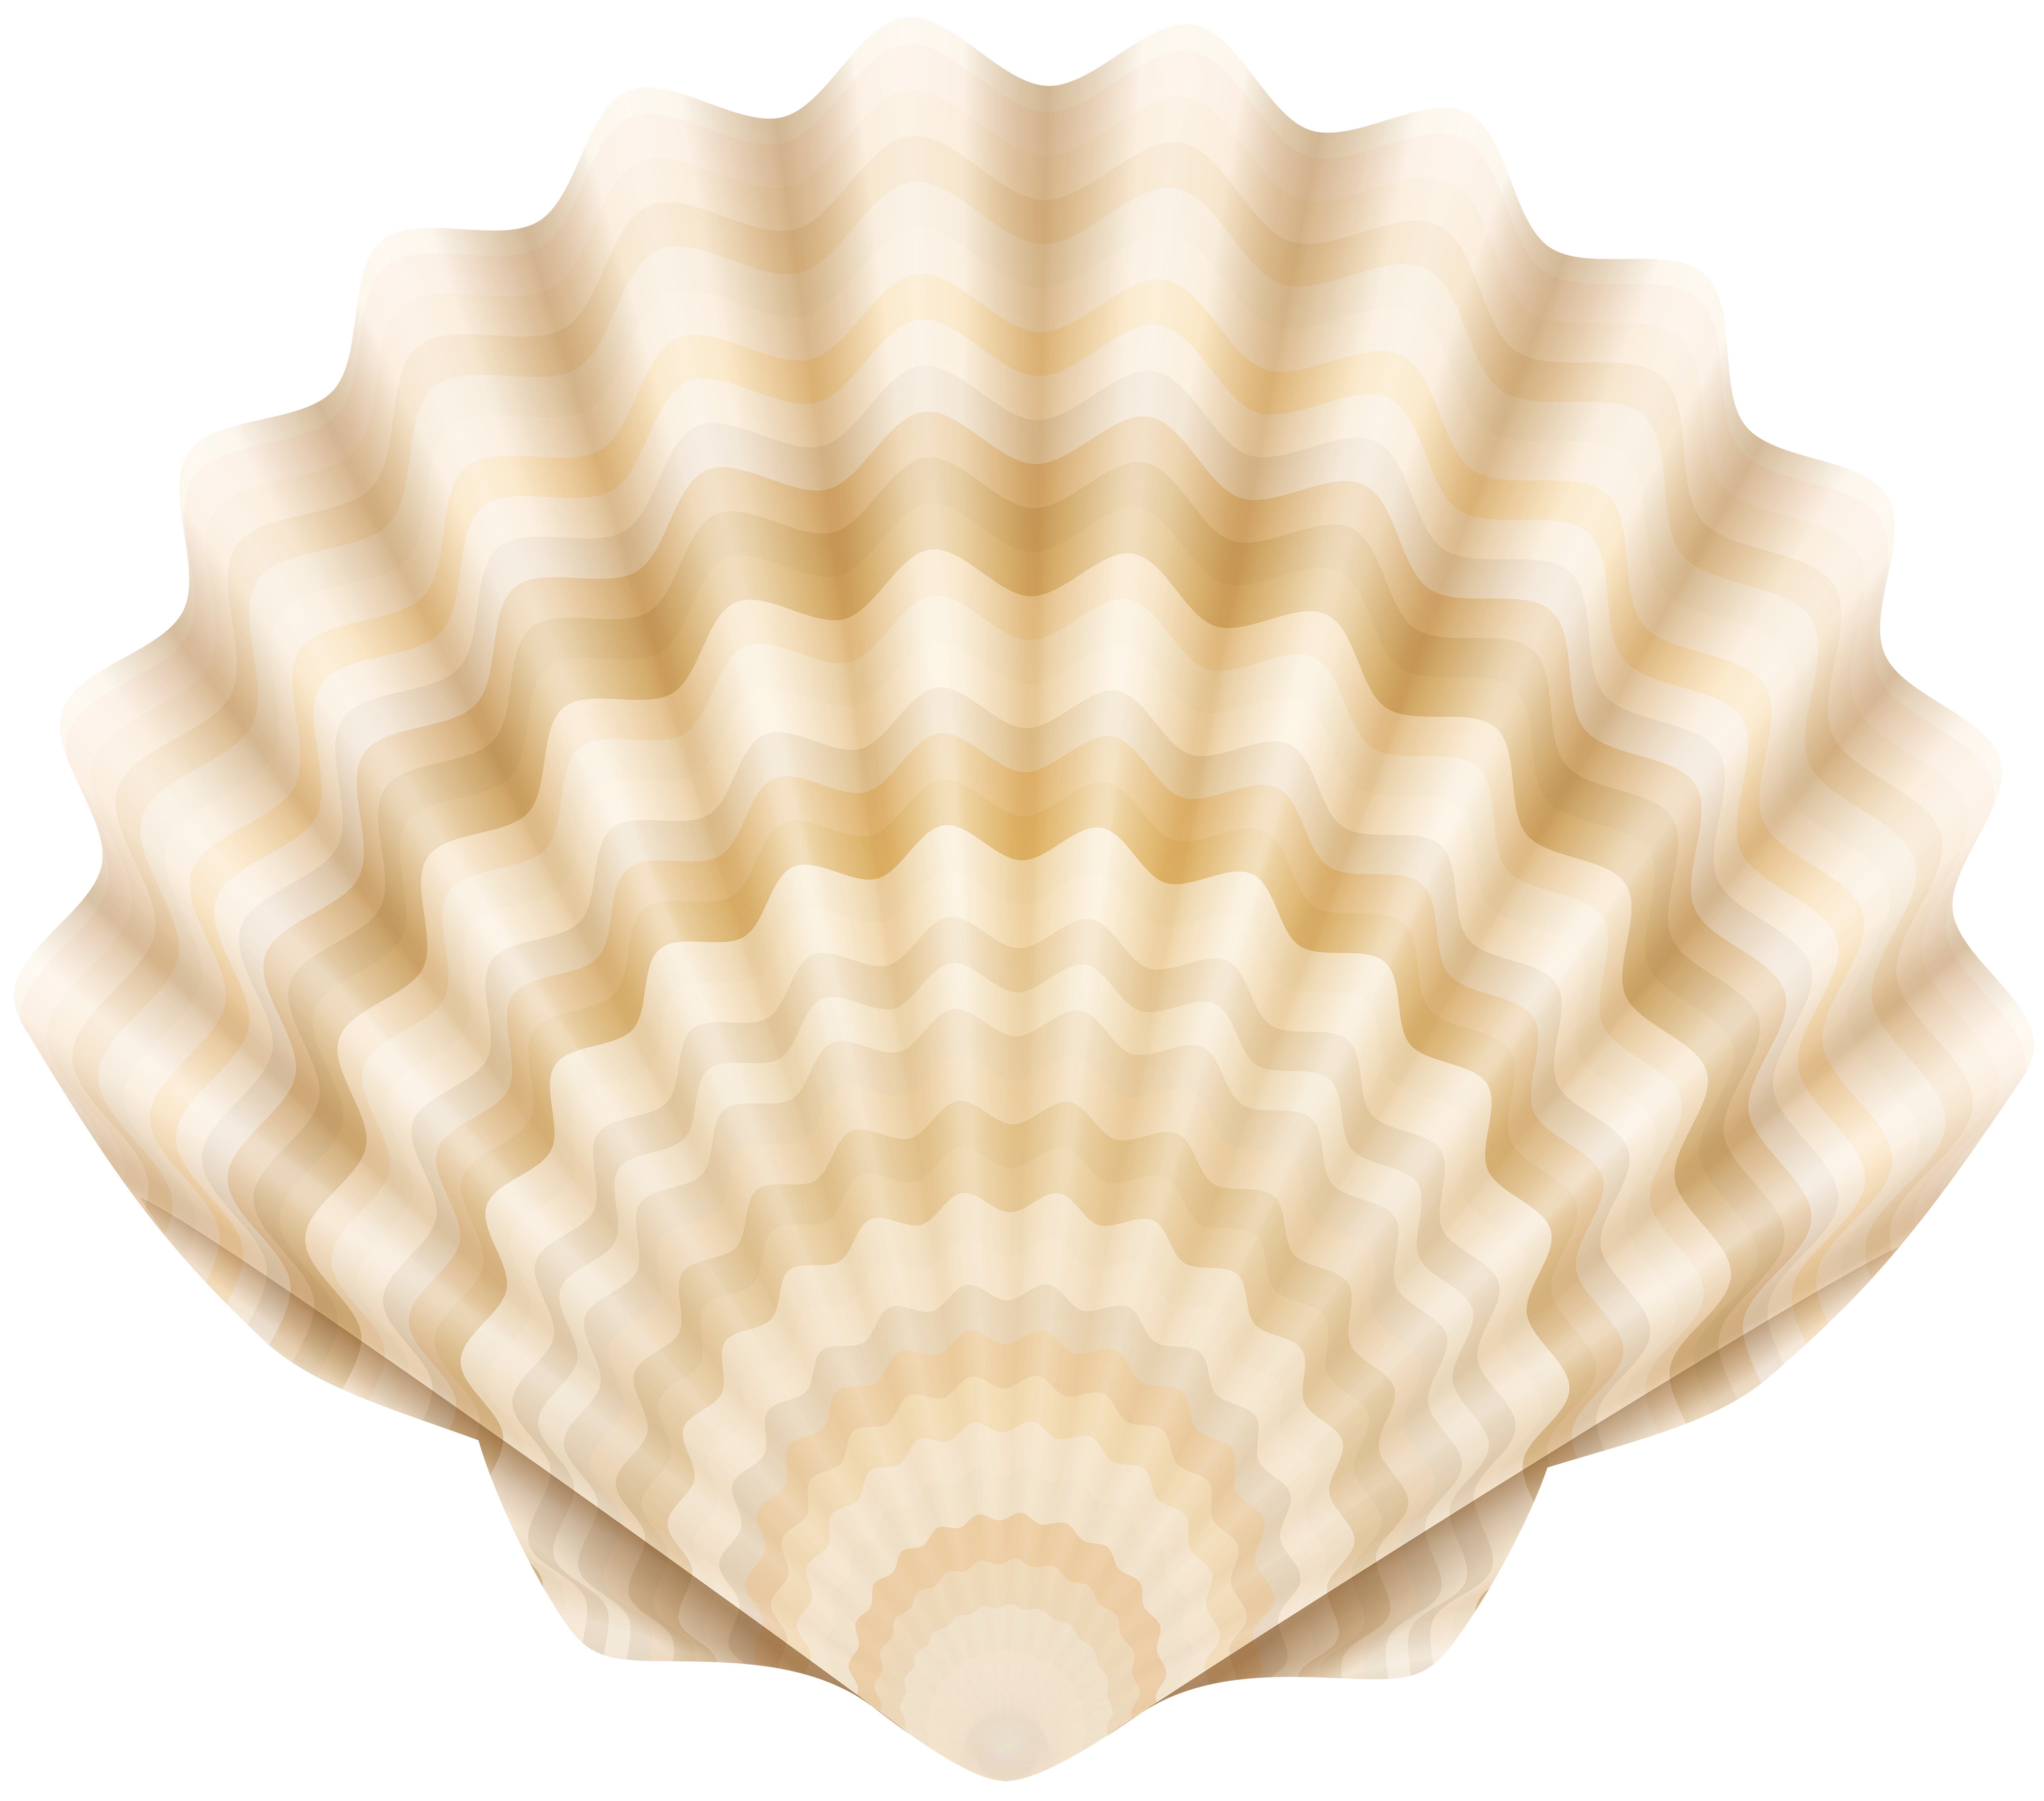 Clamshell Clip Art PNG Transparent Image.